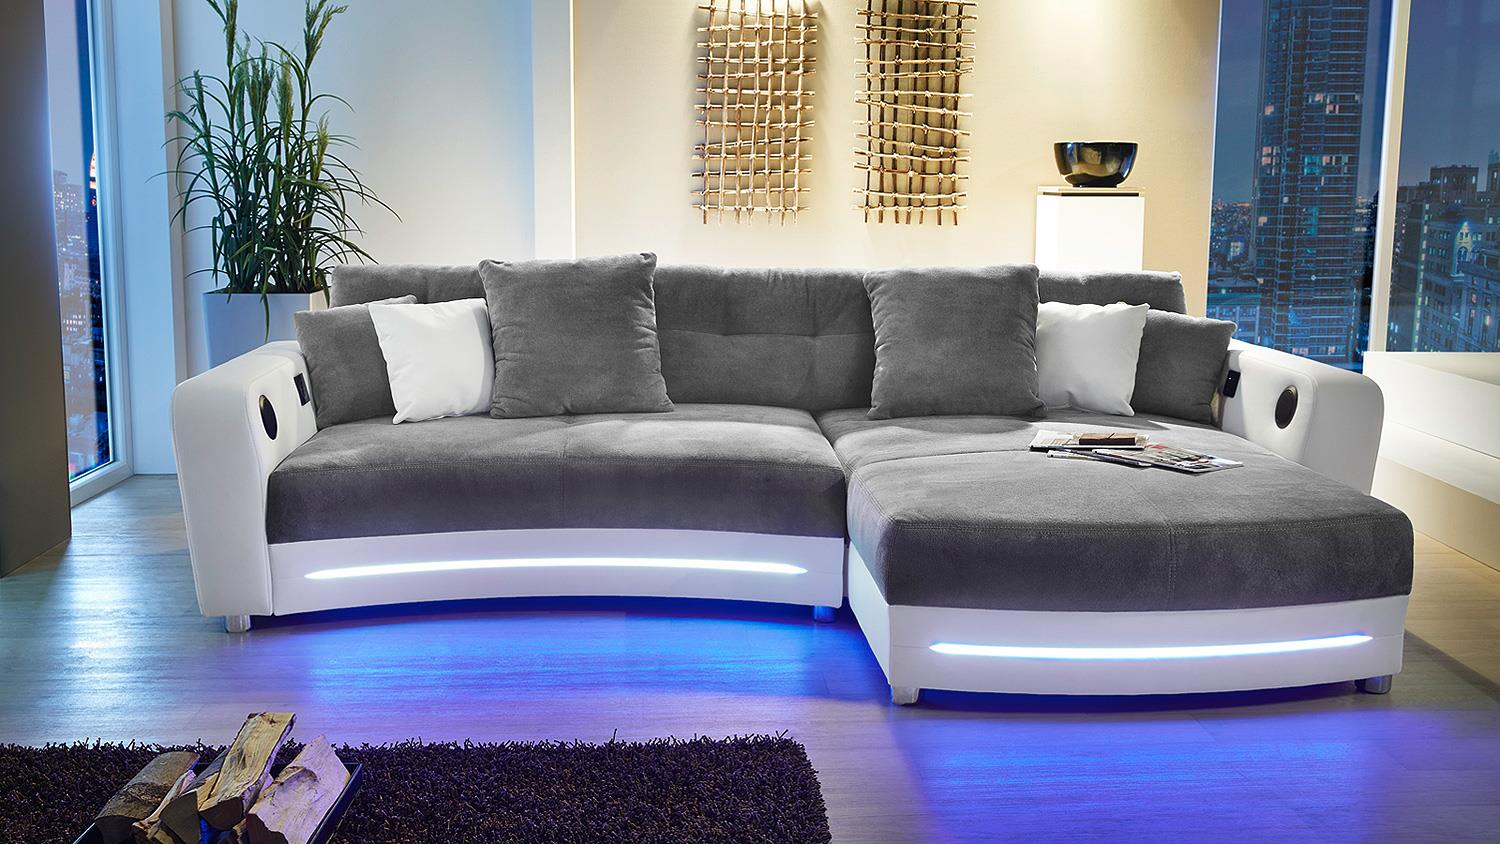 wohnlandschaft laredo sofa wei grau mit led und soundsystem. Black Bedroom Furniture Sets. Home Design Ideas